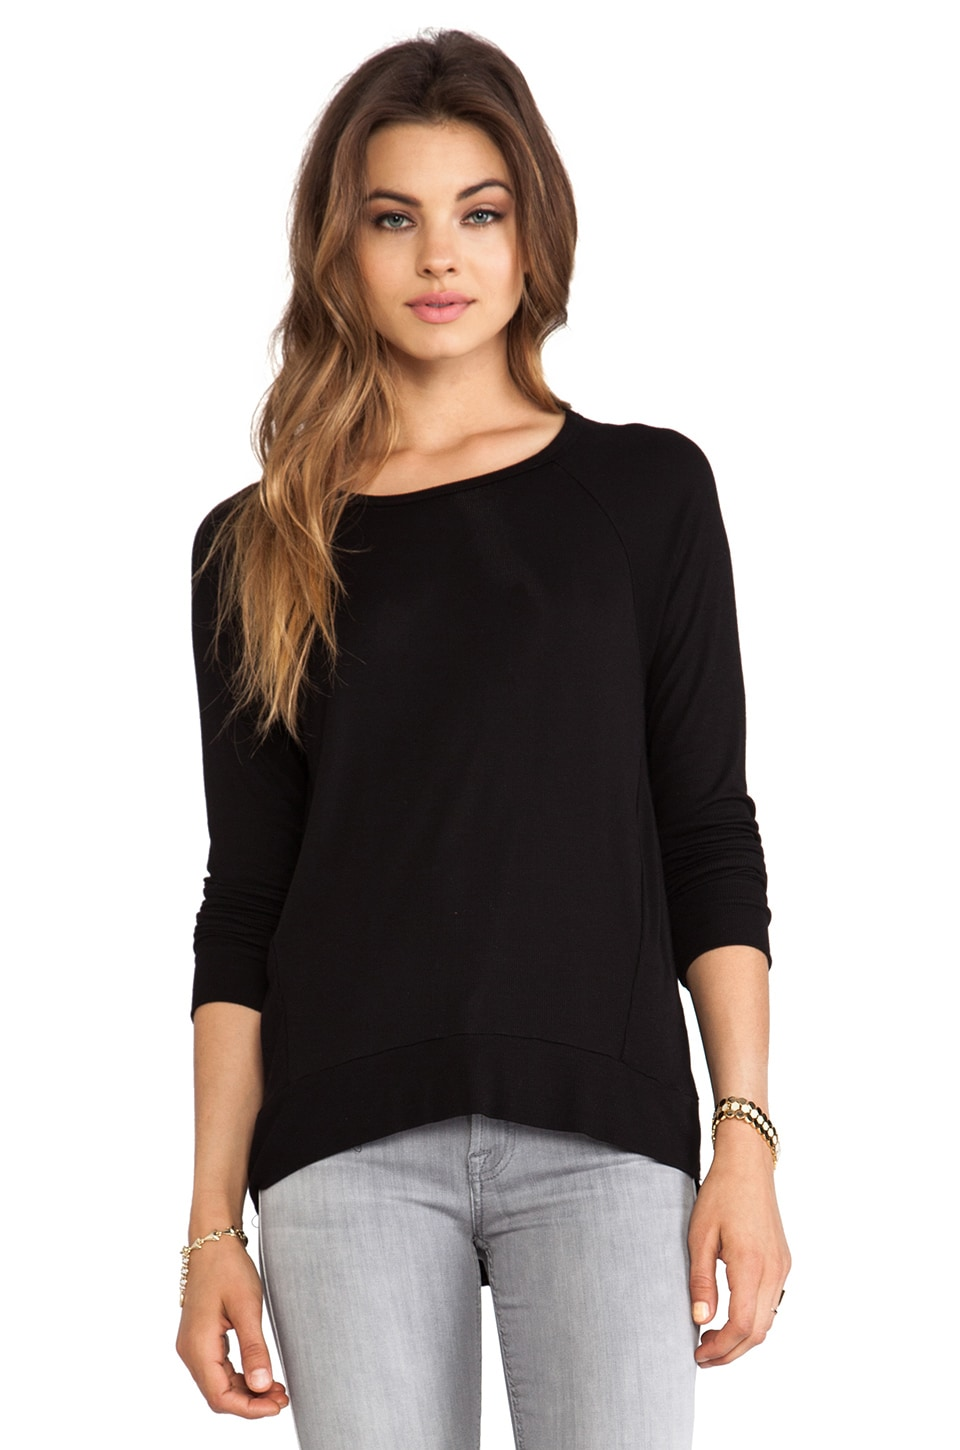 dolan 2x1 Rib Raglan Long Sleeve Tee in Black